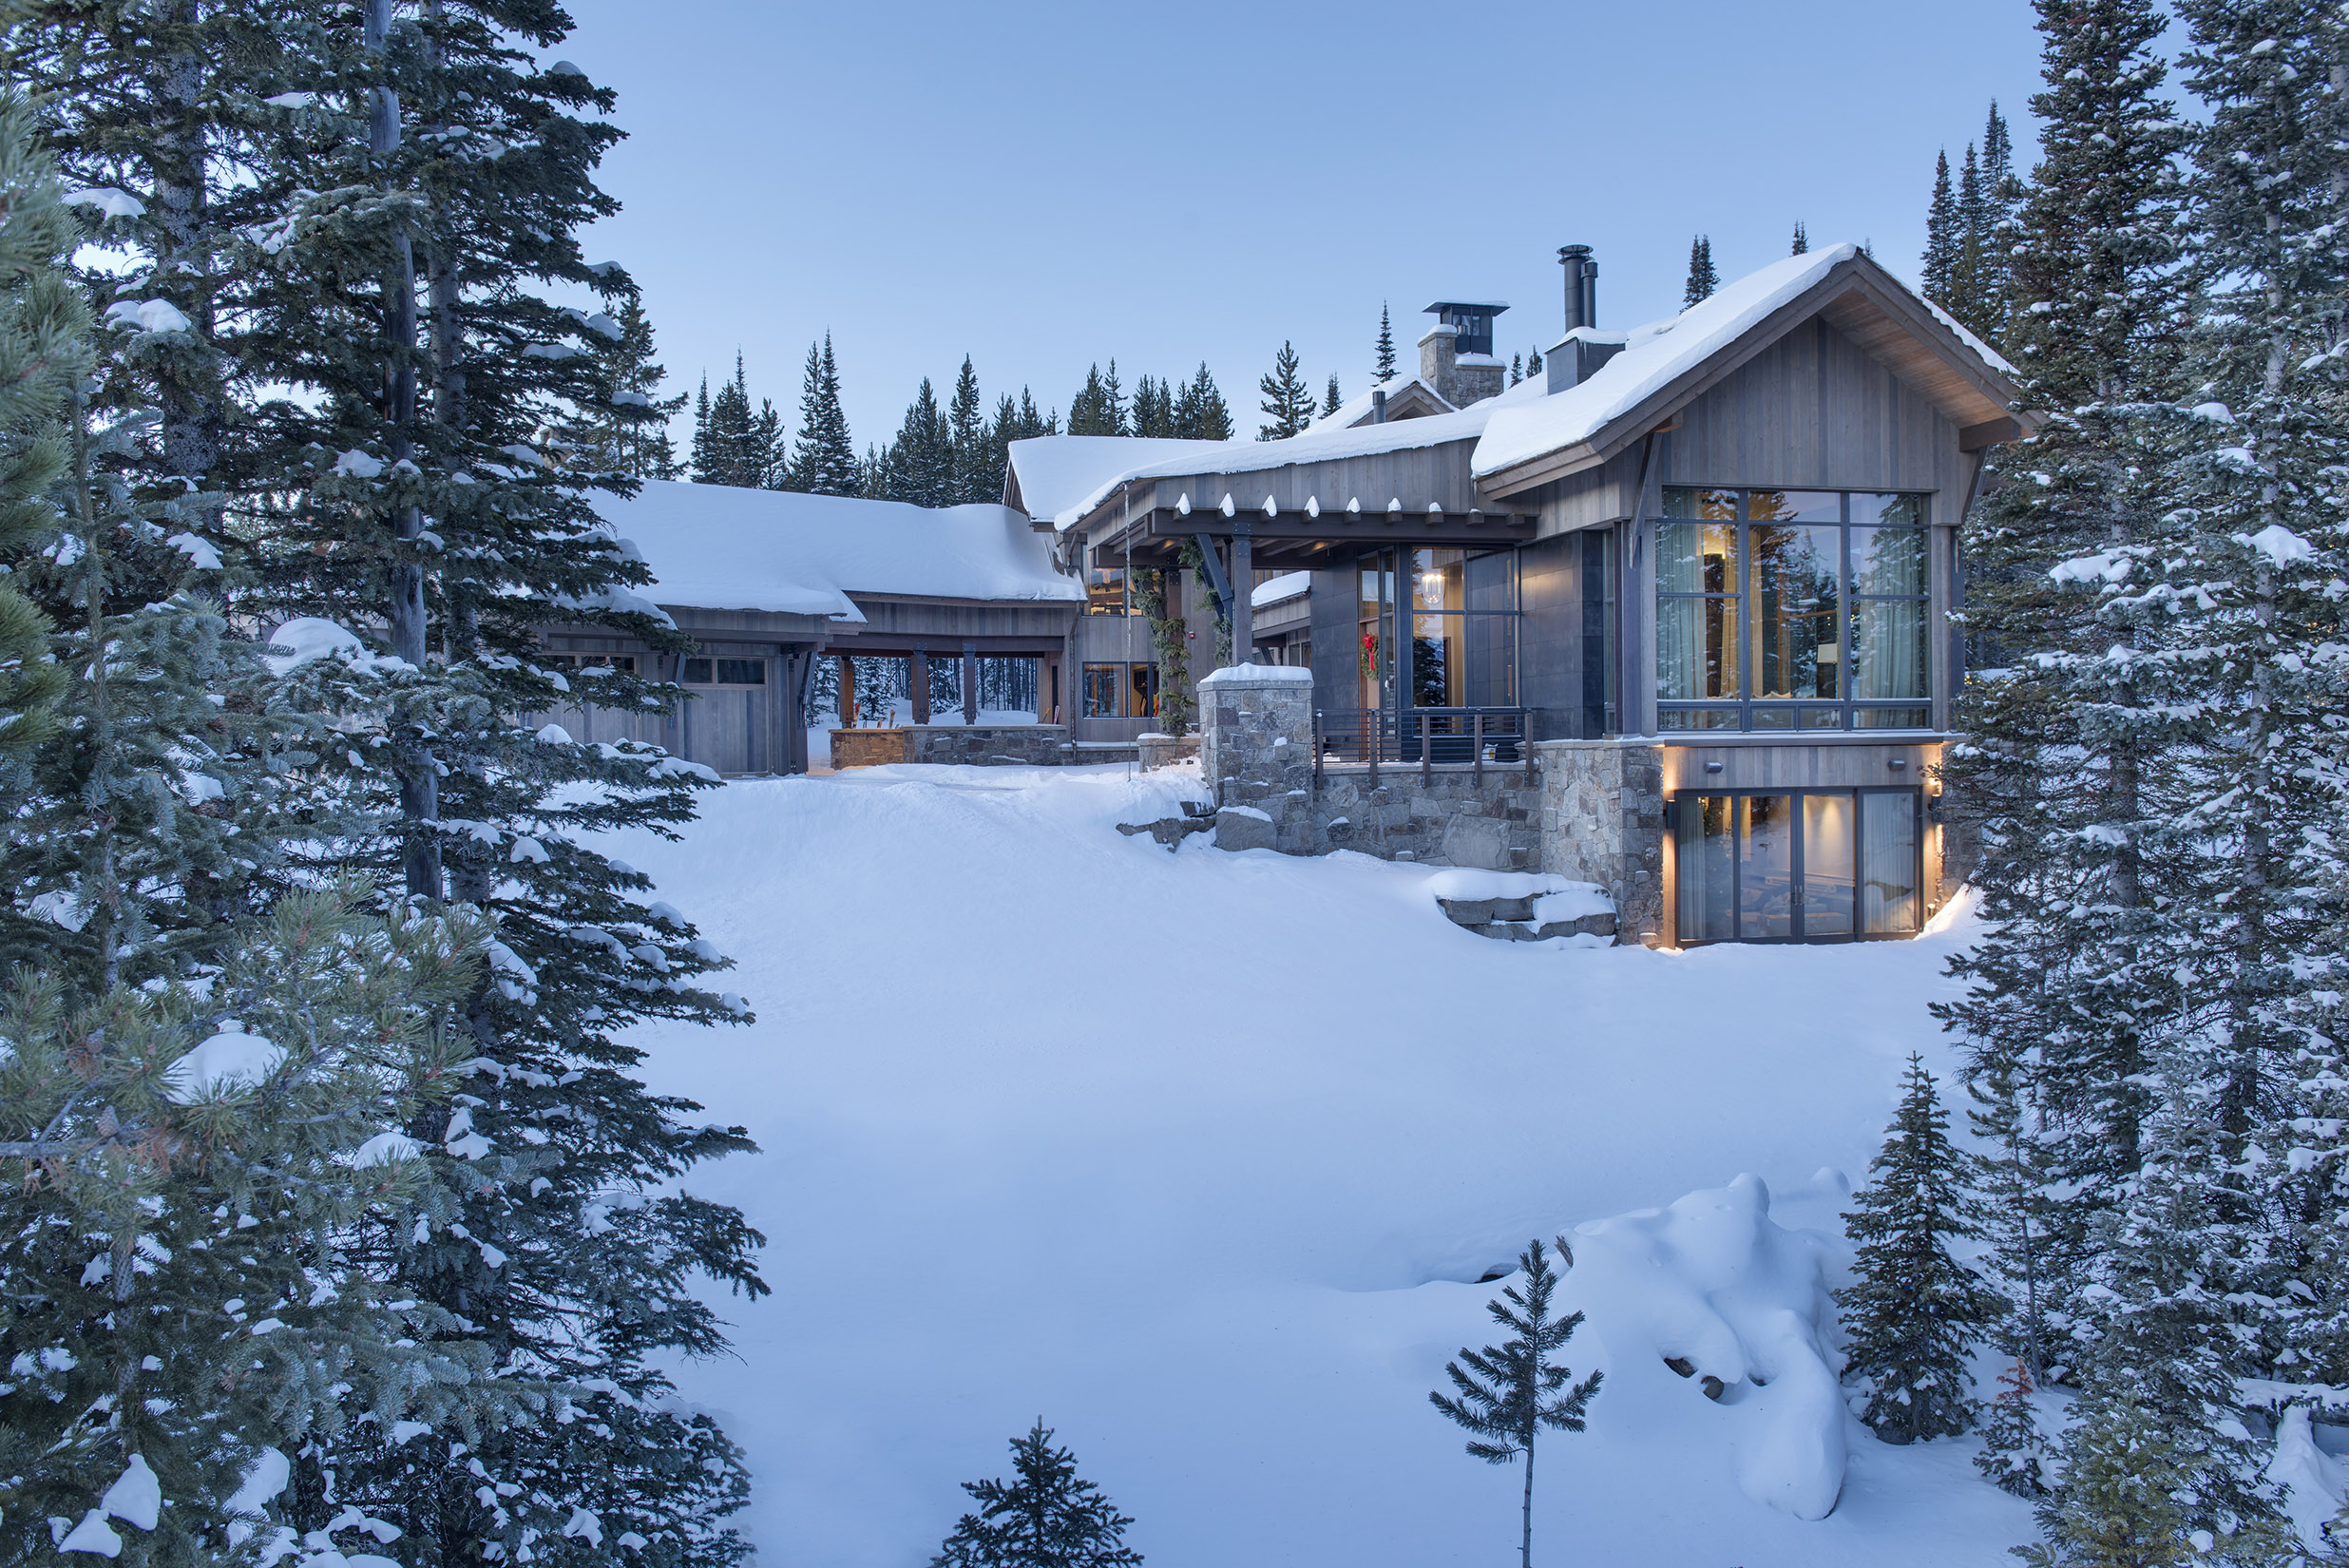 This gorgeouse Spanish Peaks Moutnain Club home was photographed early one very snowy morning.  It's such a cozy home tucked back on the mountain.  Architect -  Centre Sky Architecture ,  Builder -  Big Sky Build